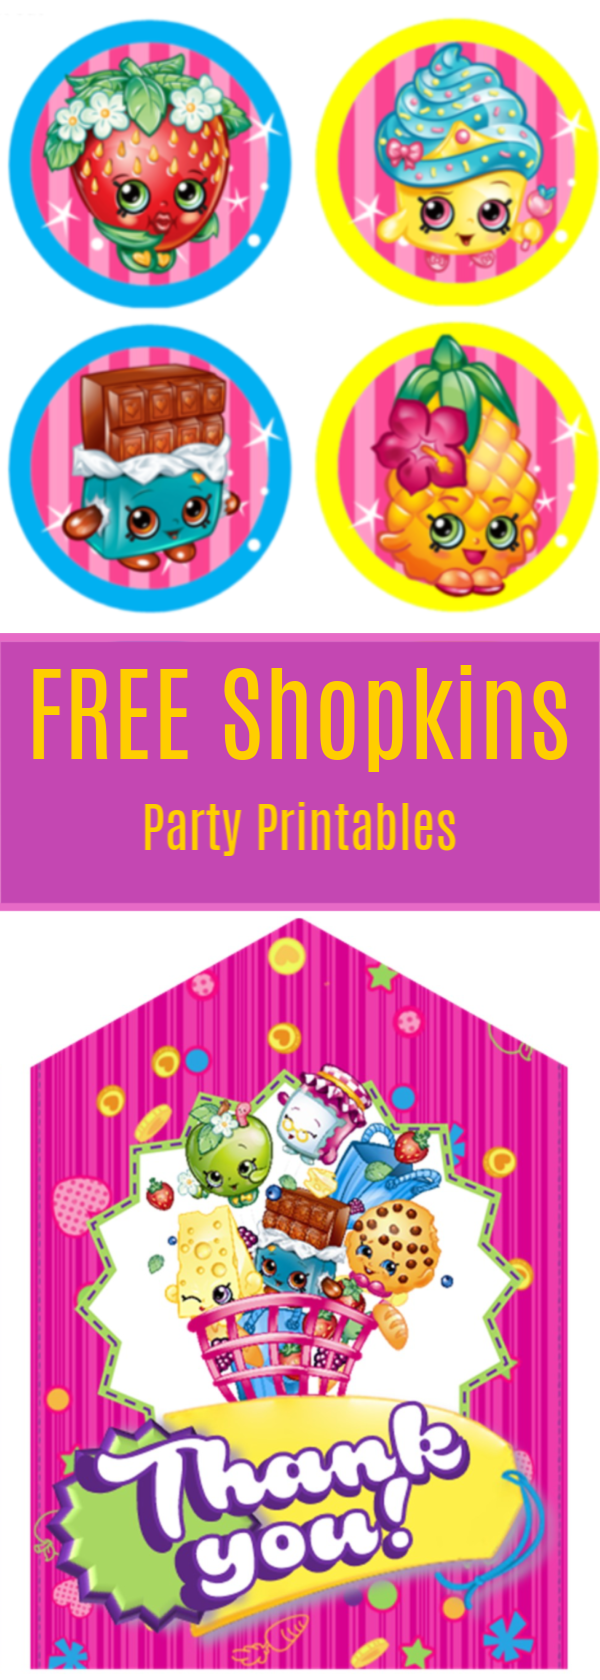 photo regarding Printable Shopkins Pictures named Shopkins Social gathering Printables - Attractive Chaos